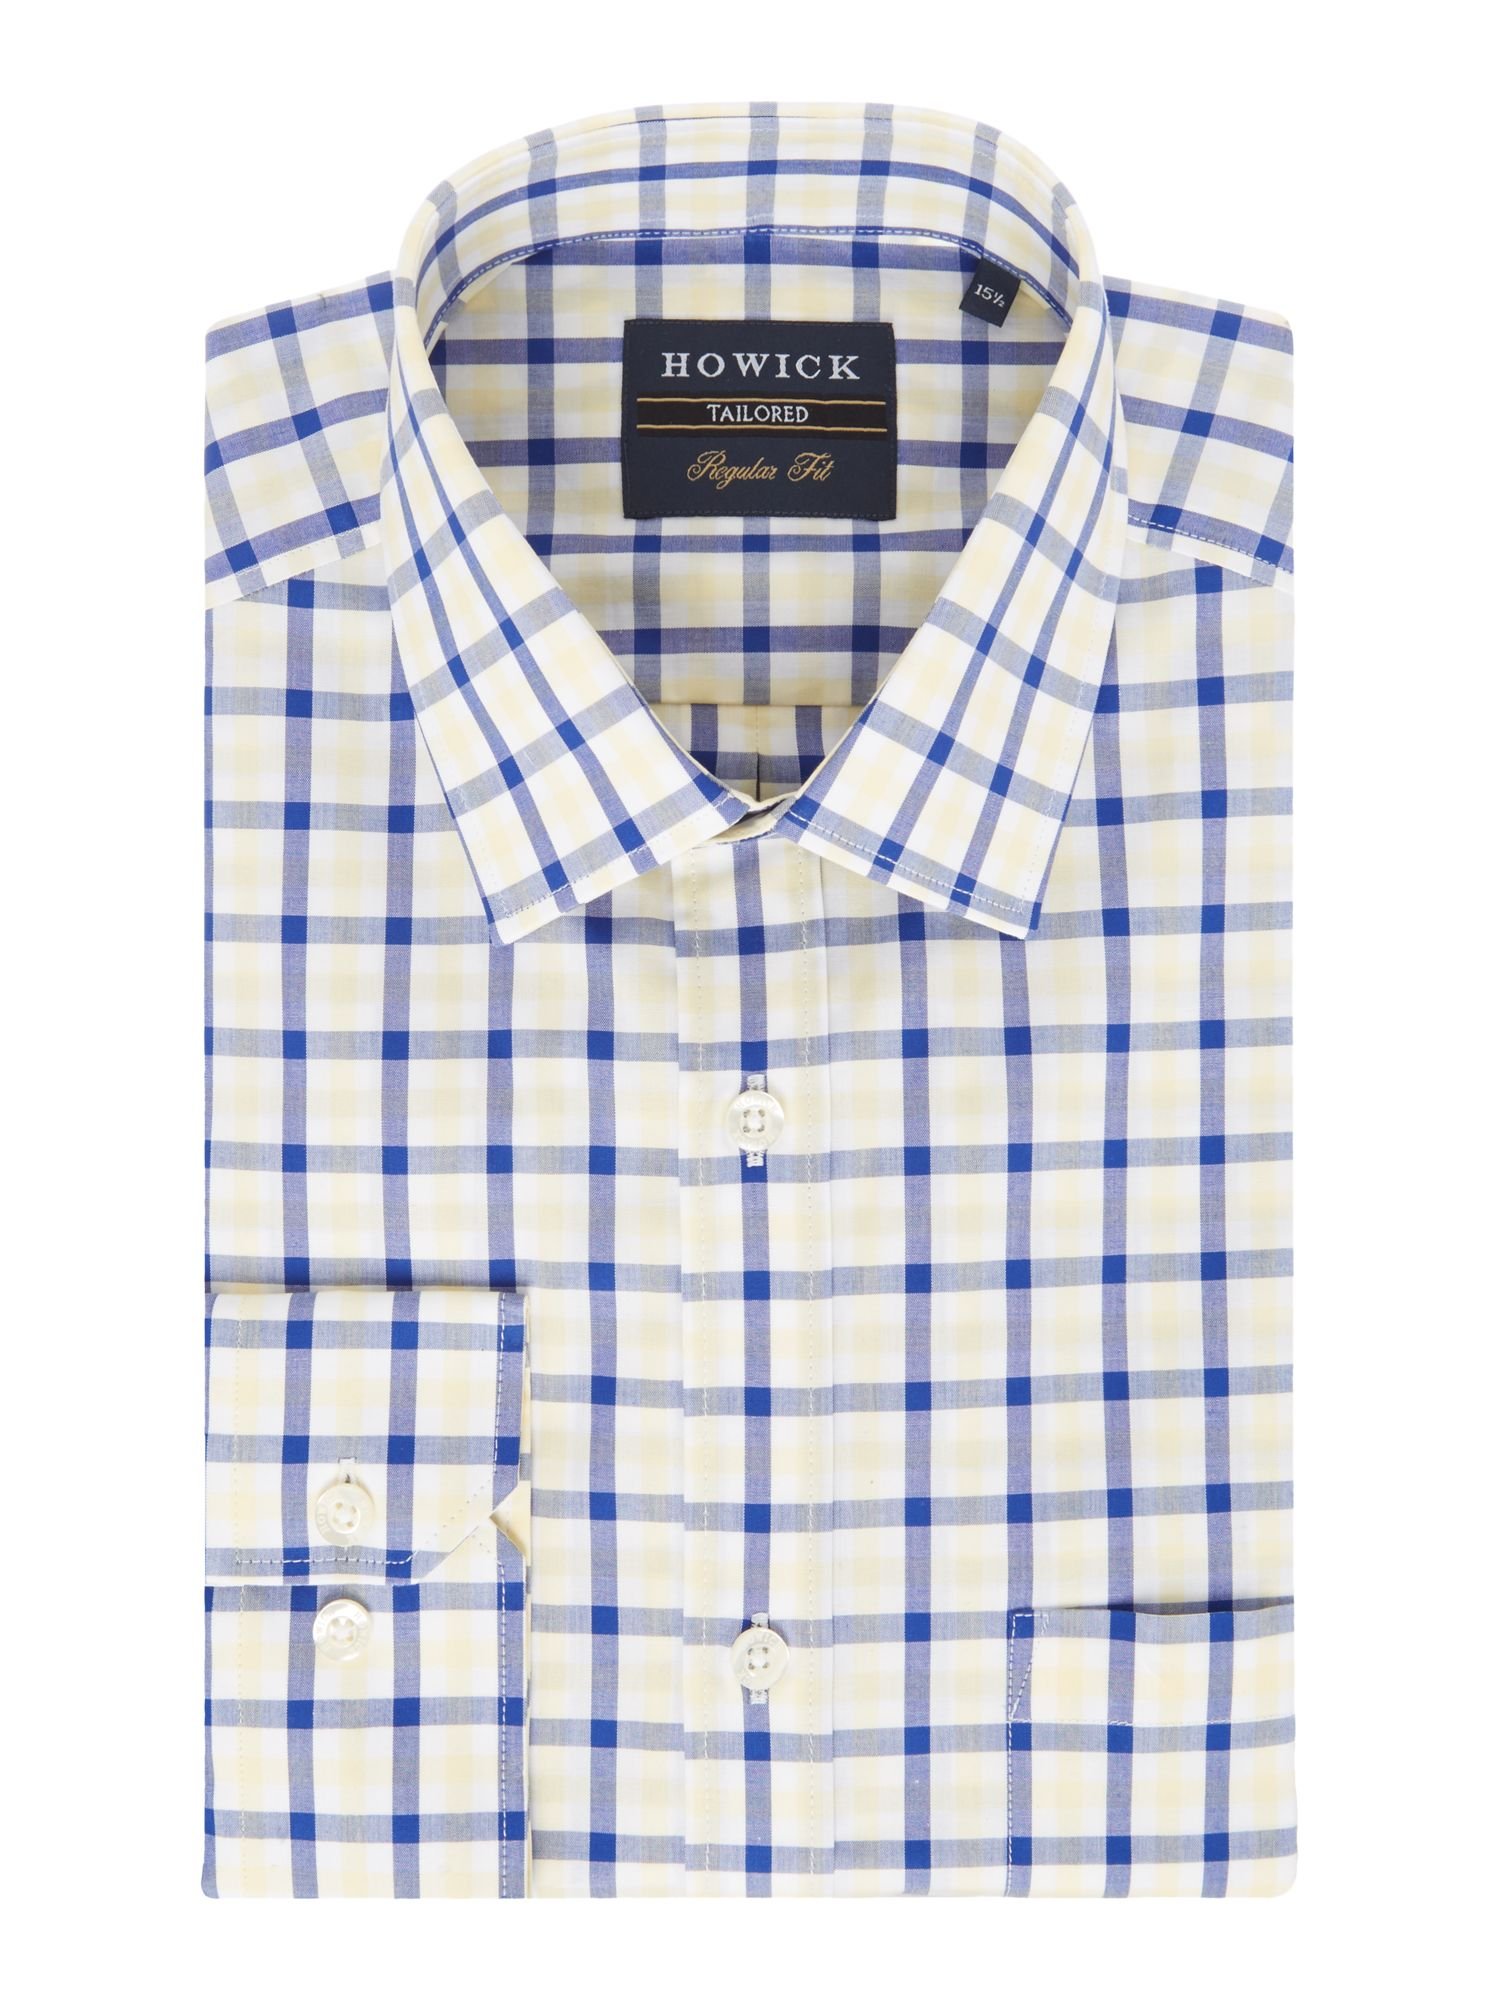 Men 39 s howick tailored cedar gingham shirt yellow for Mens yellow gingham shirt